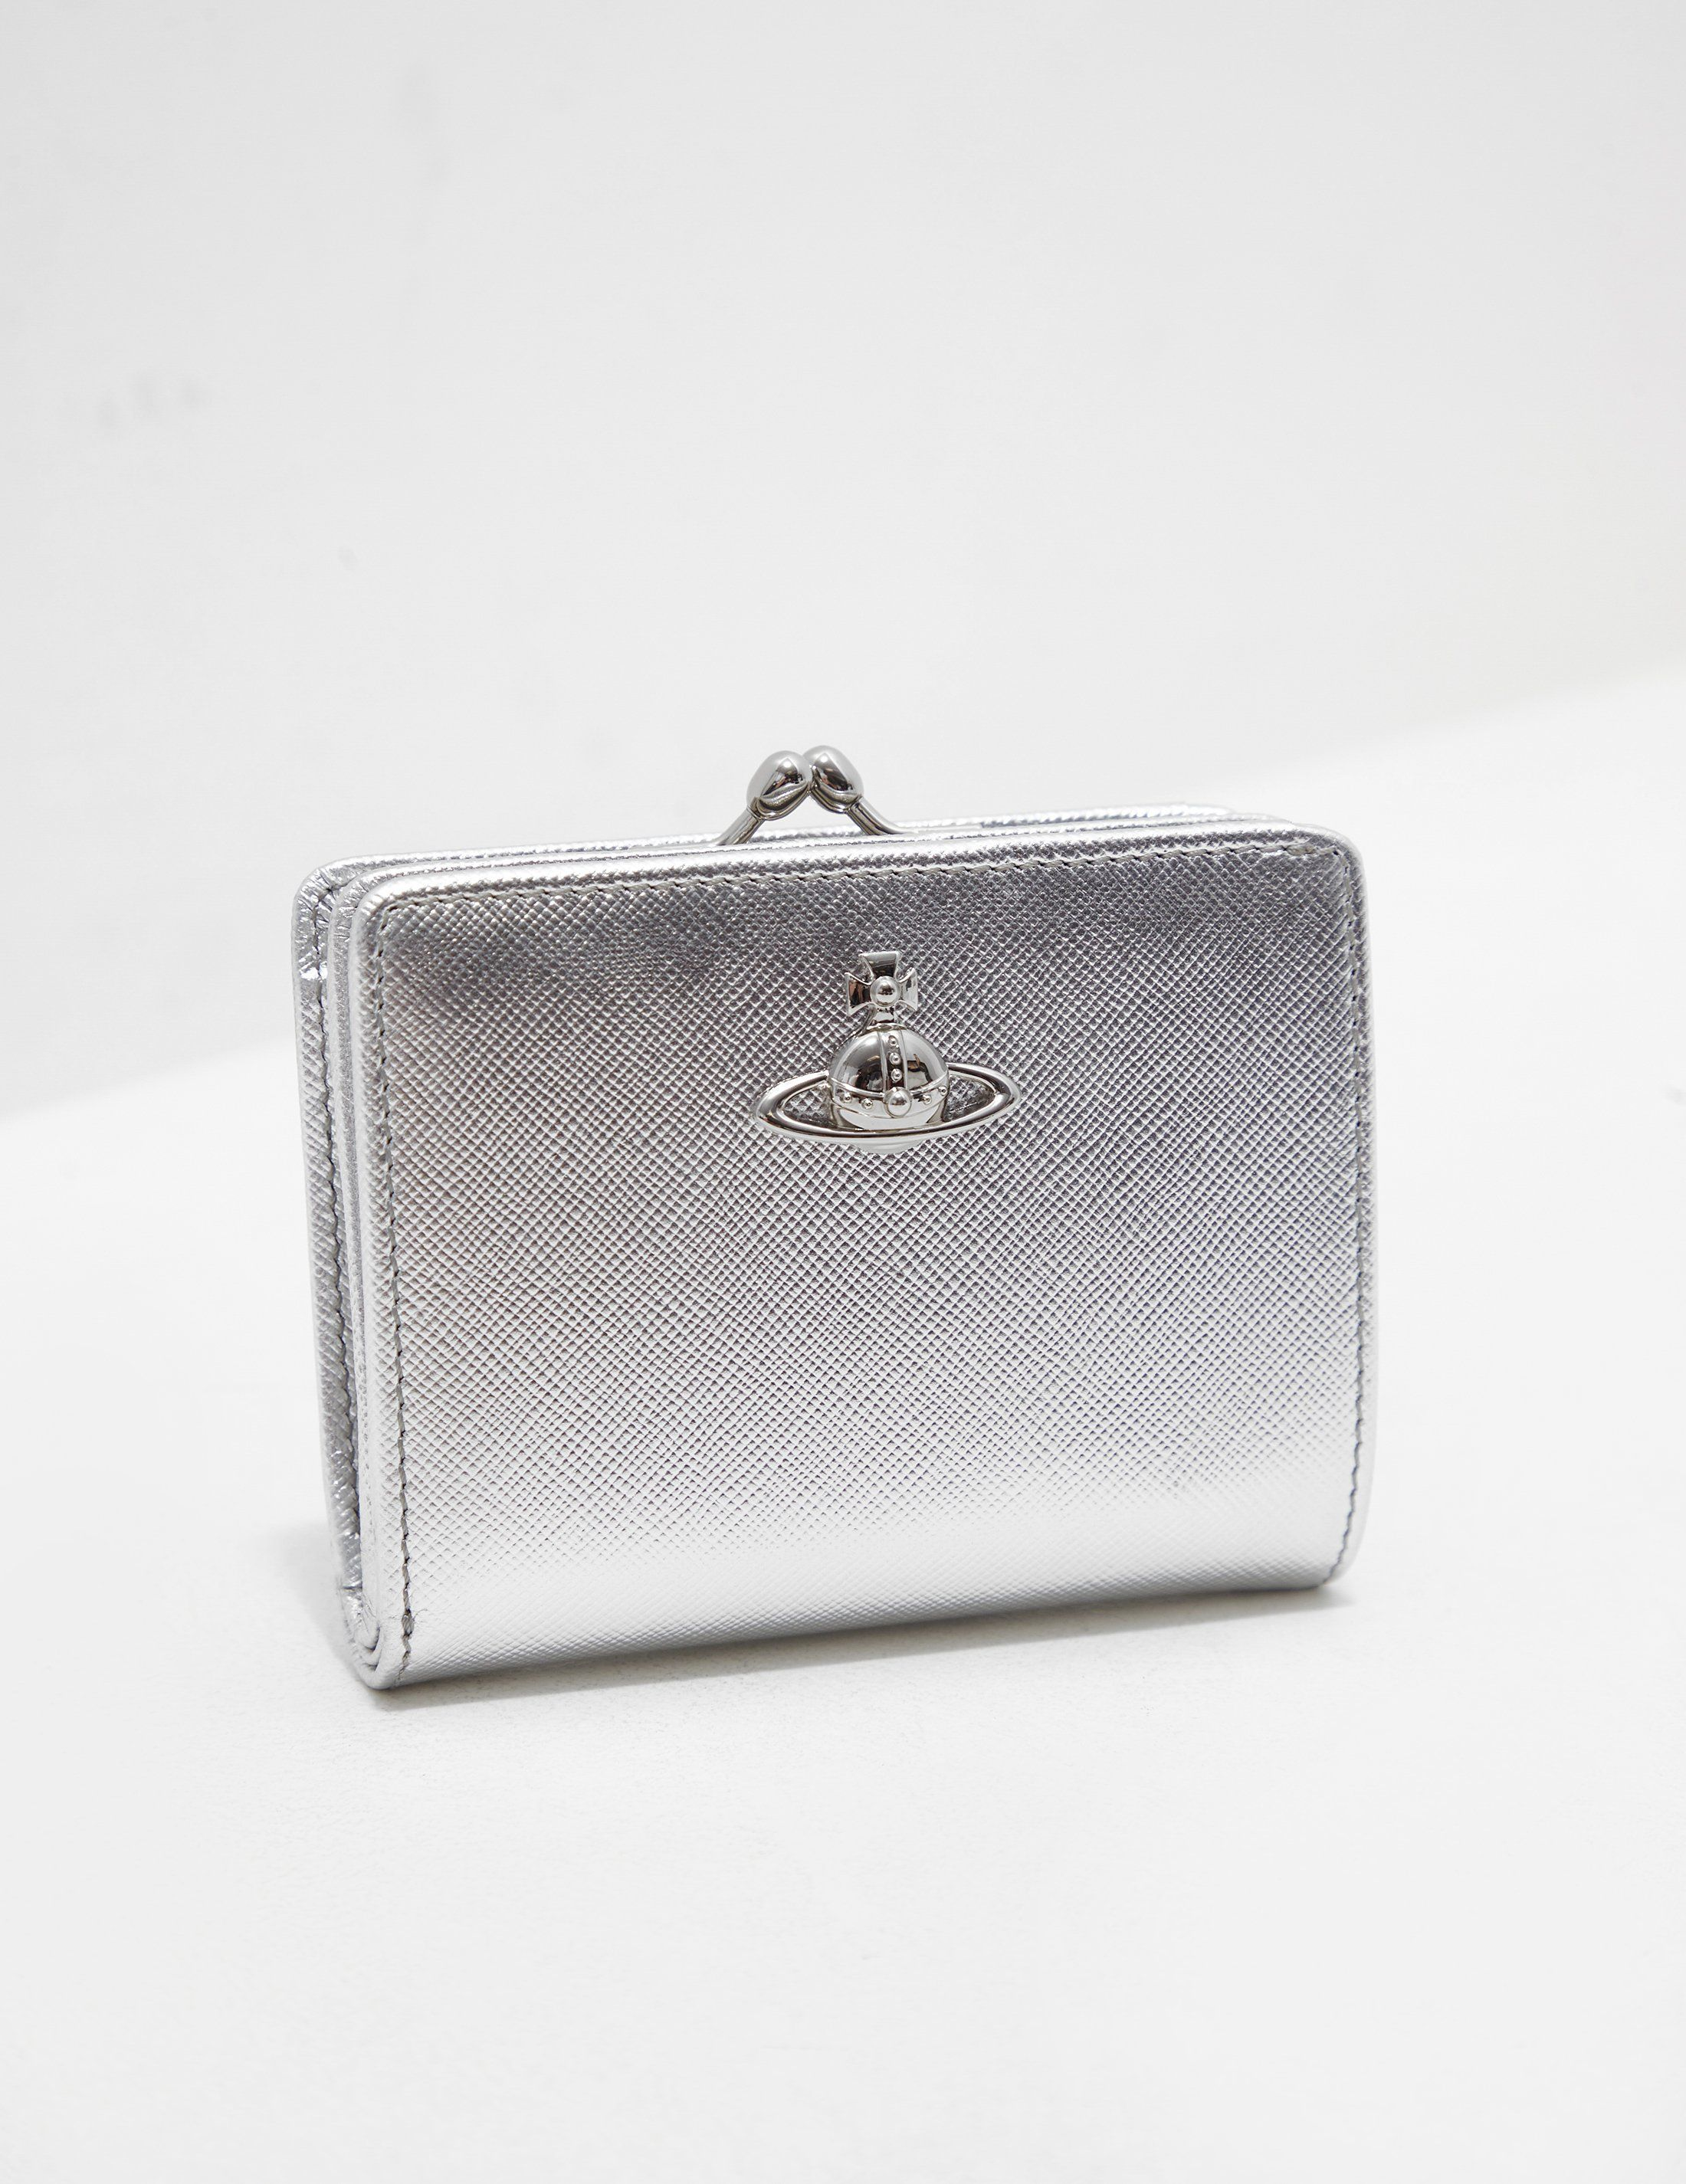 Vivienne Westwood Pimlico Small Purse